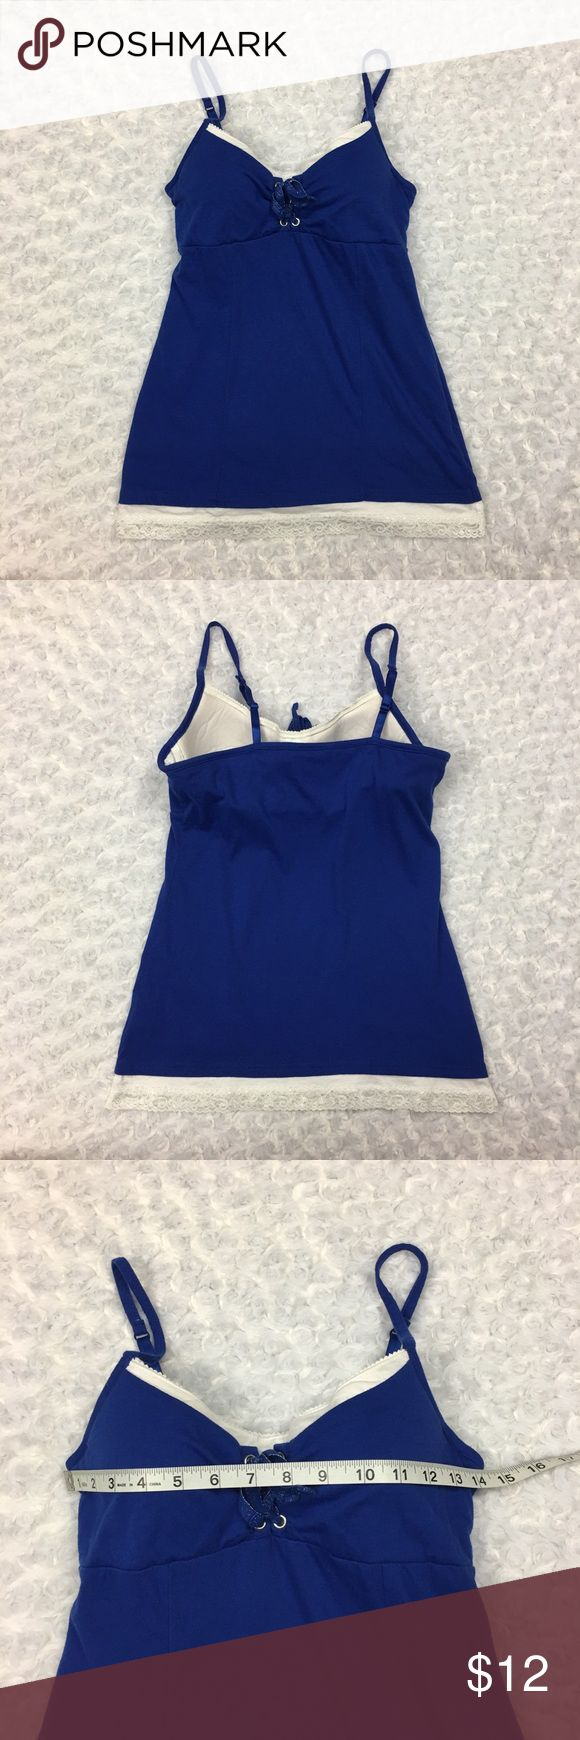 Blue Tank Top w Spaghetti Straps Built in Bra GLO Jeans Brand Royal Blue Tank Top w Spaghetti Straps Built in Padded Bra   Size: Juniors Large.  Condition: Gently used, small blemish on left breast. SEE PHOTOS * This listing is for ONE (1) Top *  - Built in underwire padded bra. - Built in bra is white - White lace trim on the bottom of shirt - Blue ribbon tied in the front for decoration   * See photos for measurements and more details *  Please note: Color may vary slightly due to…